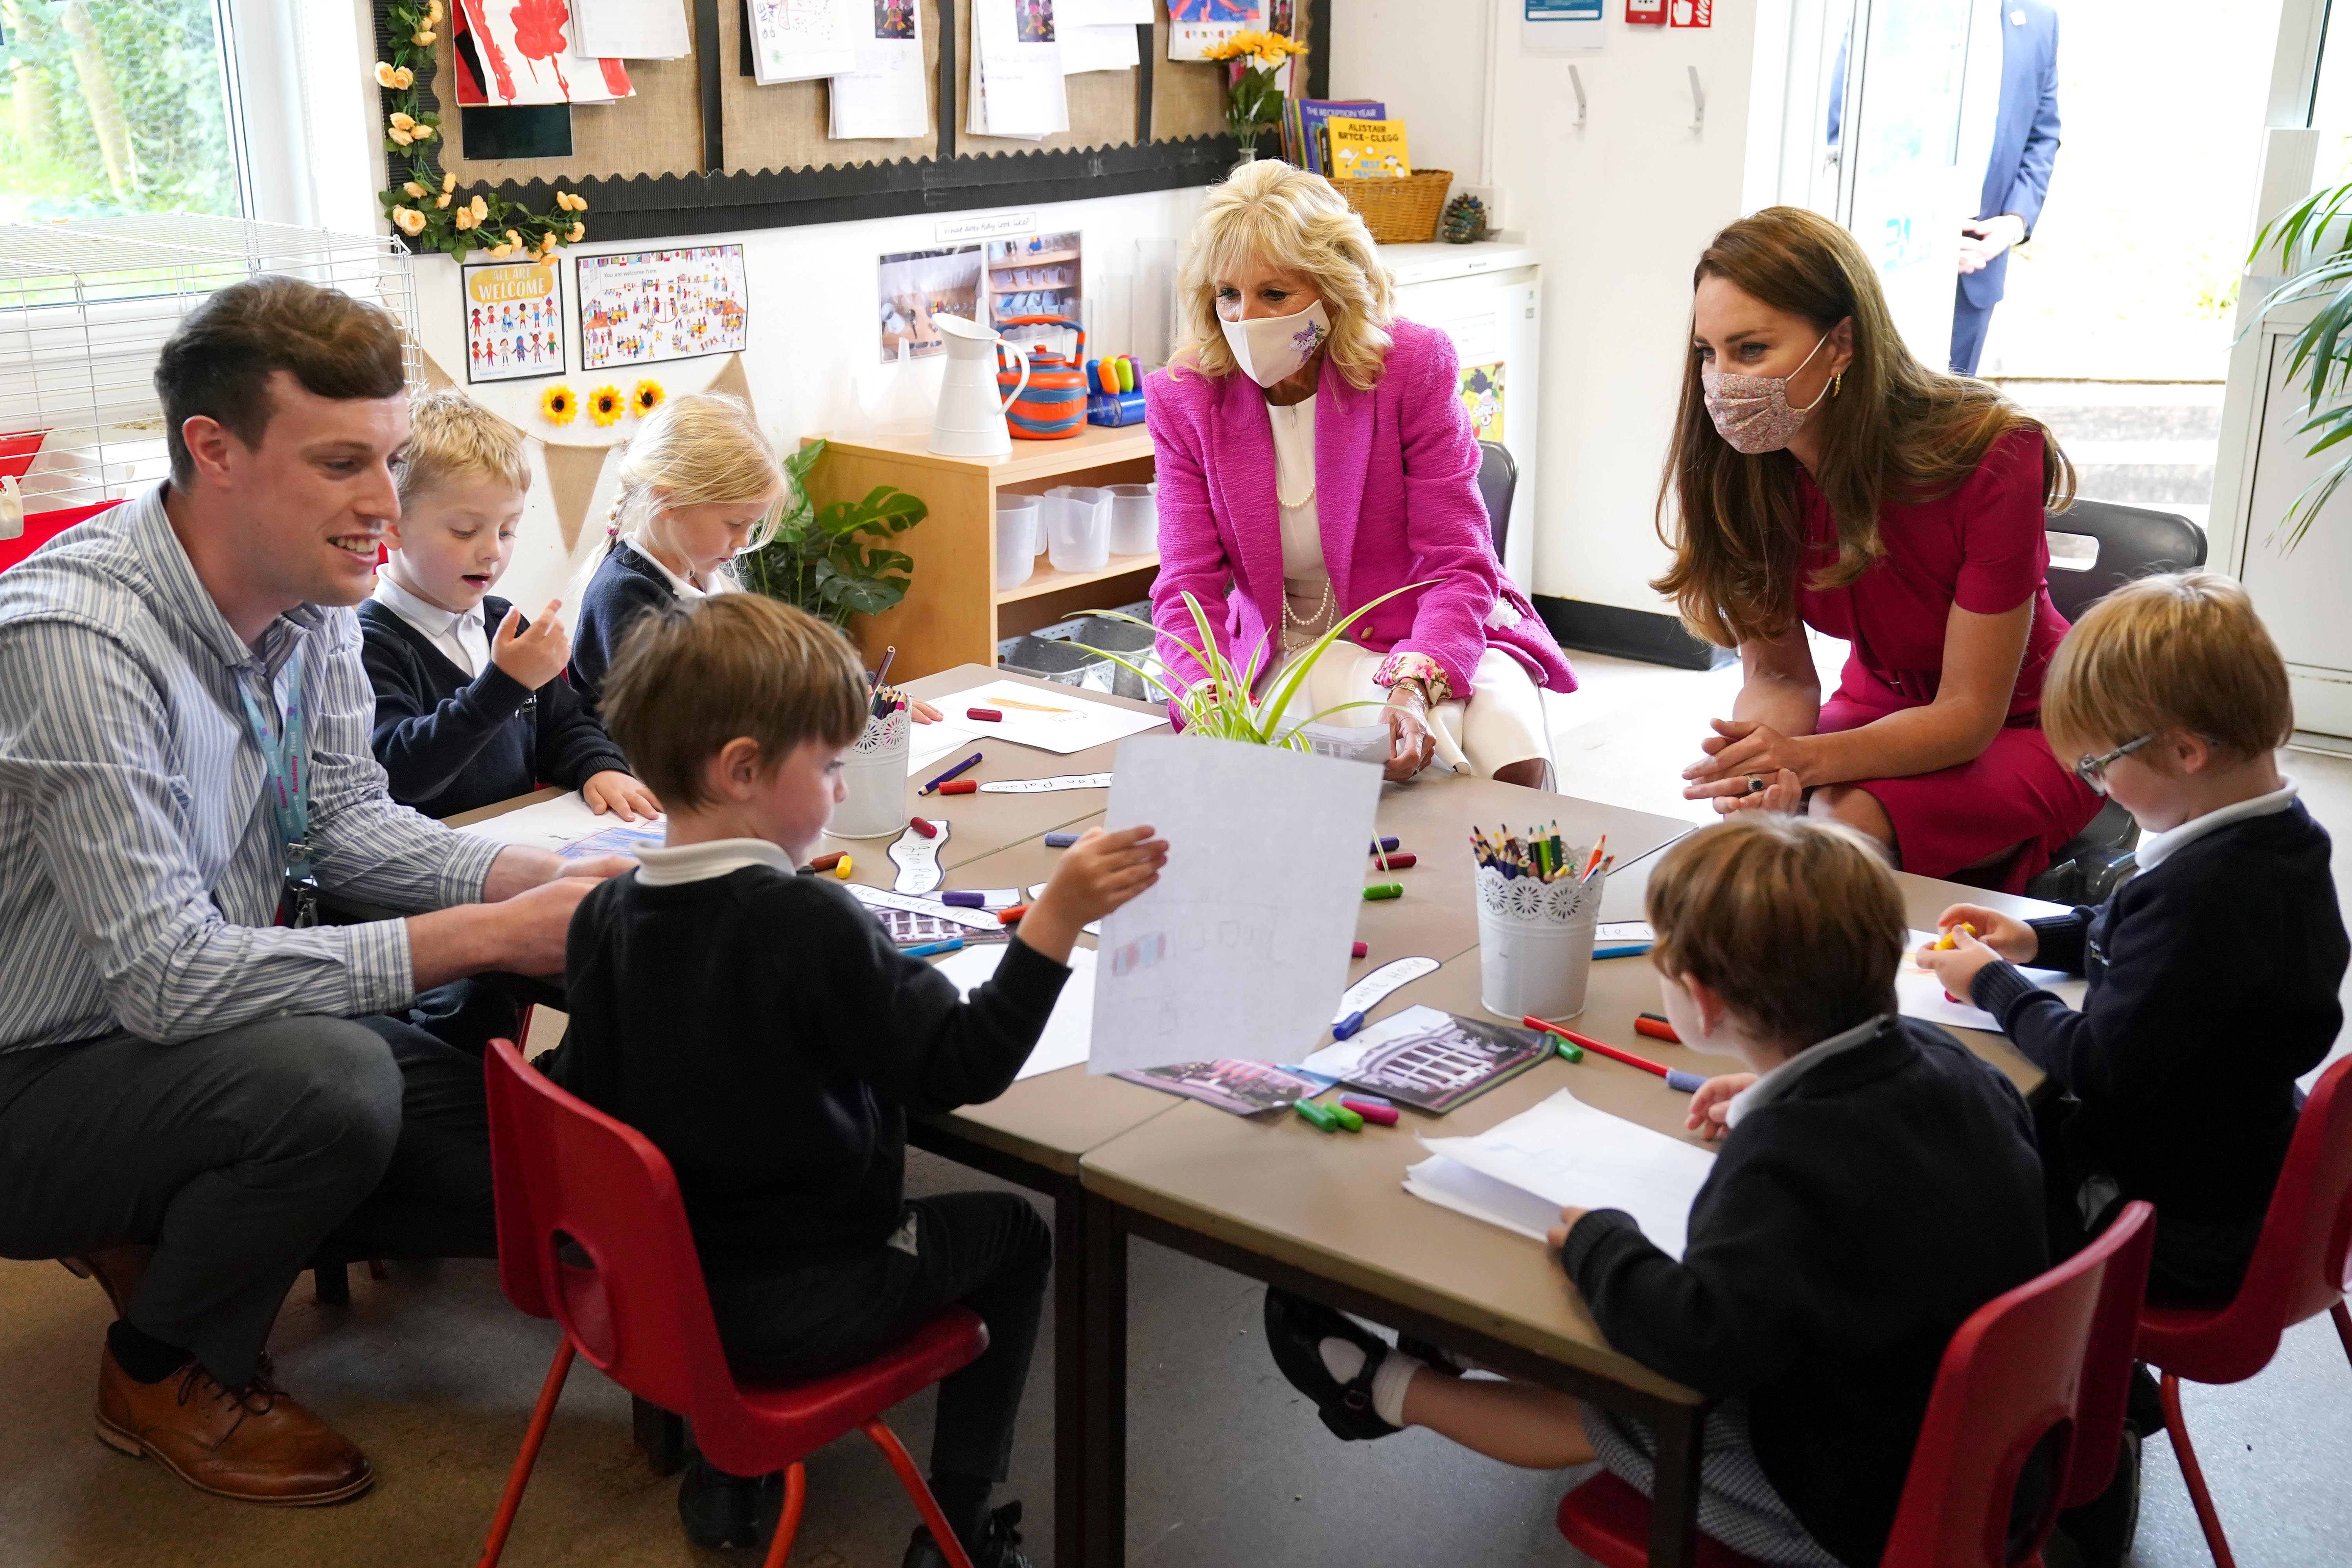 The Duchess of Cambridge and Dr Biden at a School in Cornwall